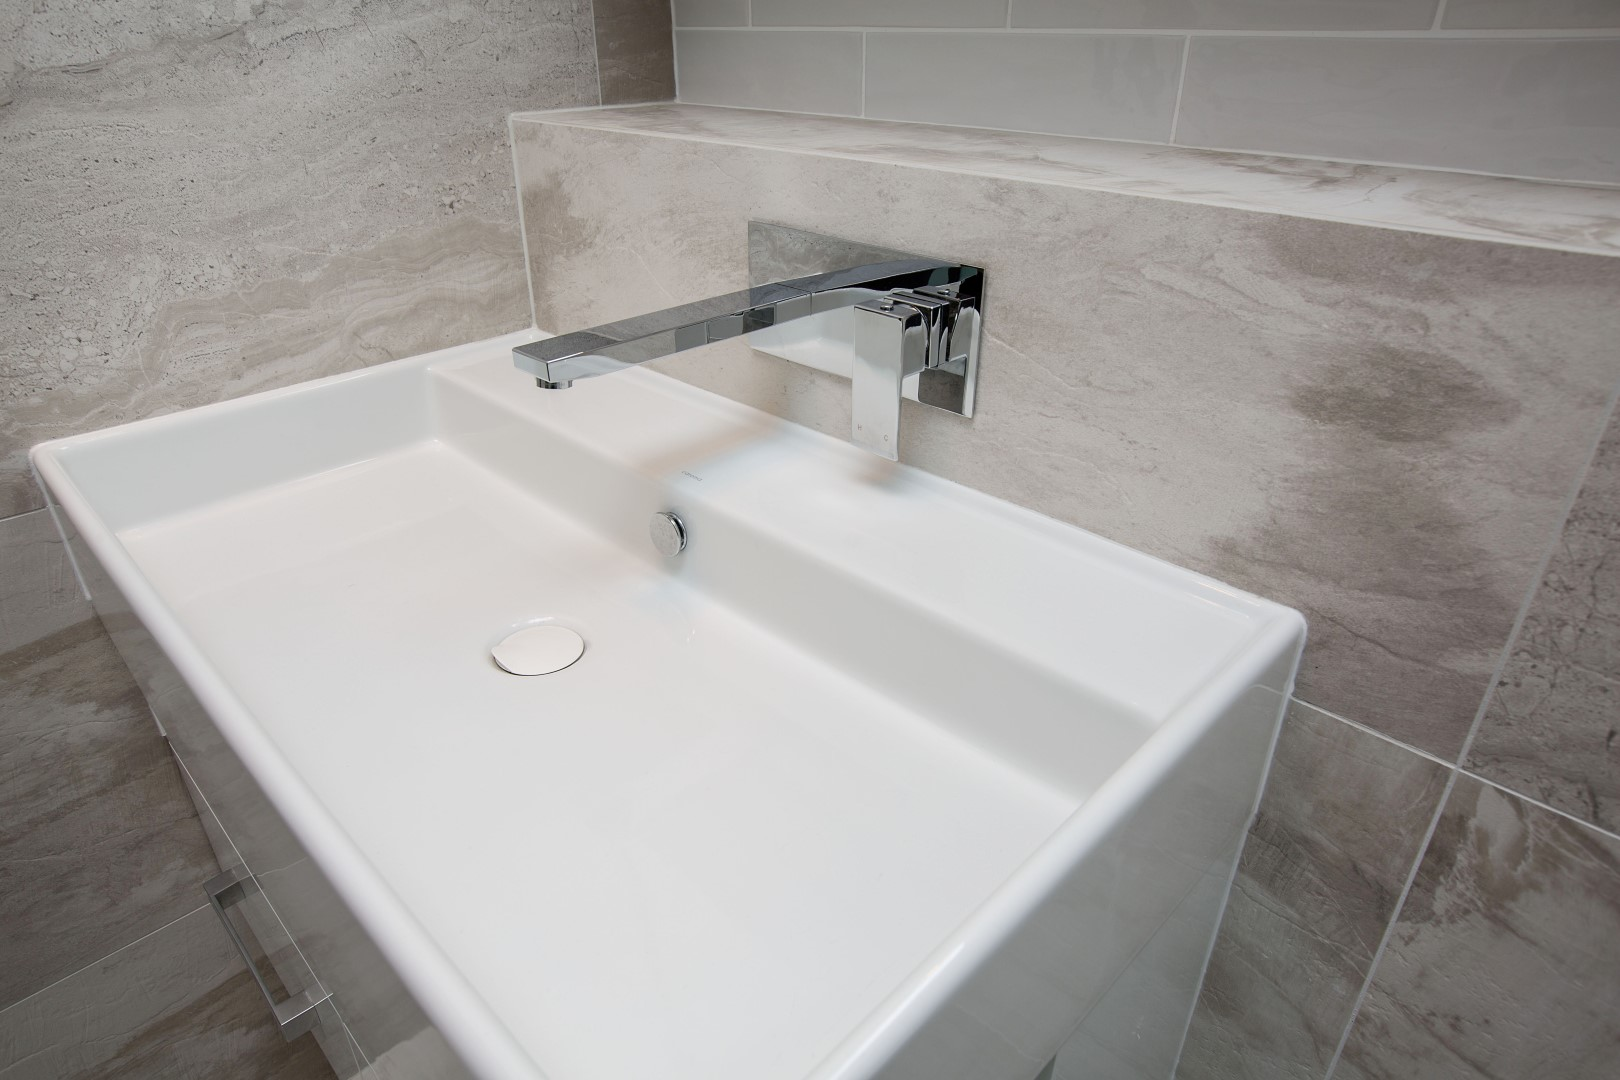 Teo Wall Basin with Mitzu Bliss Mixer Outlet